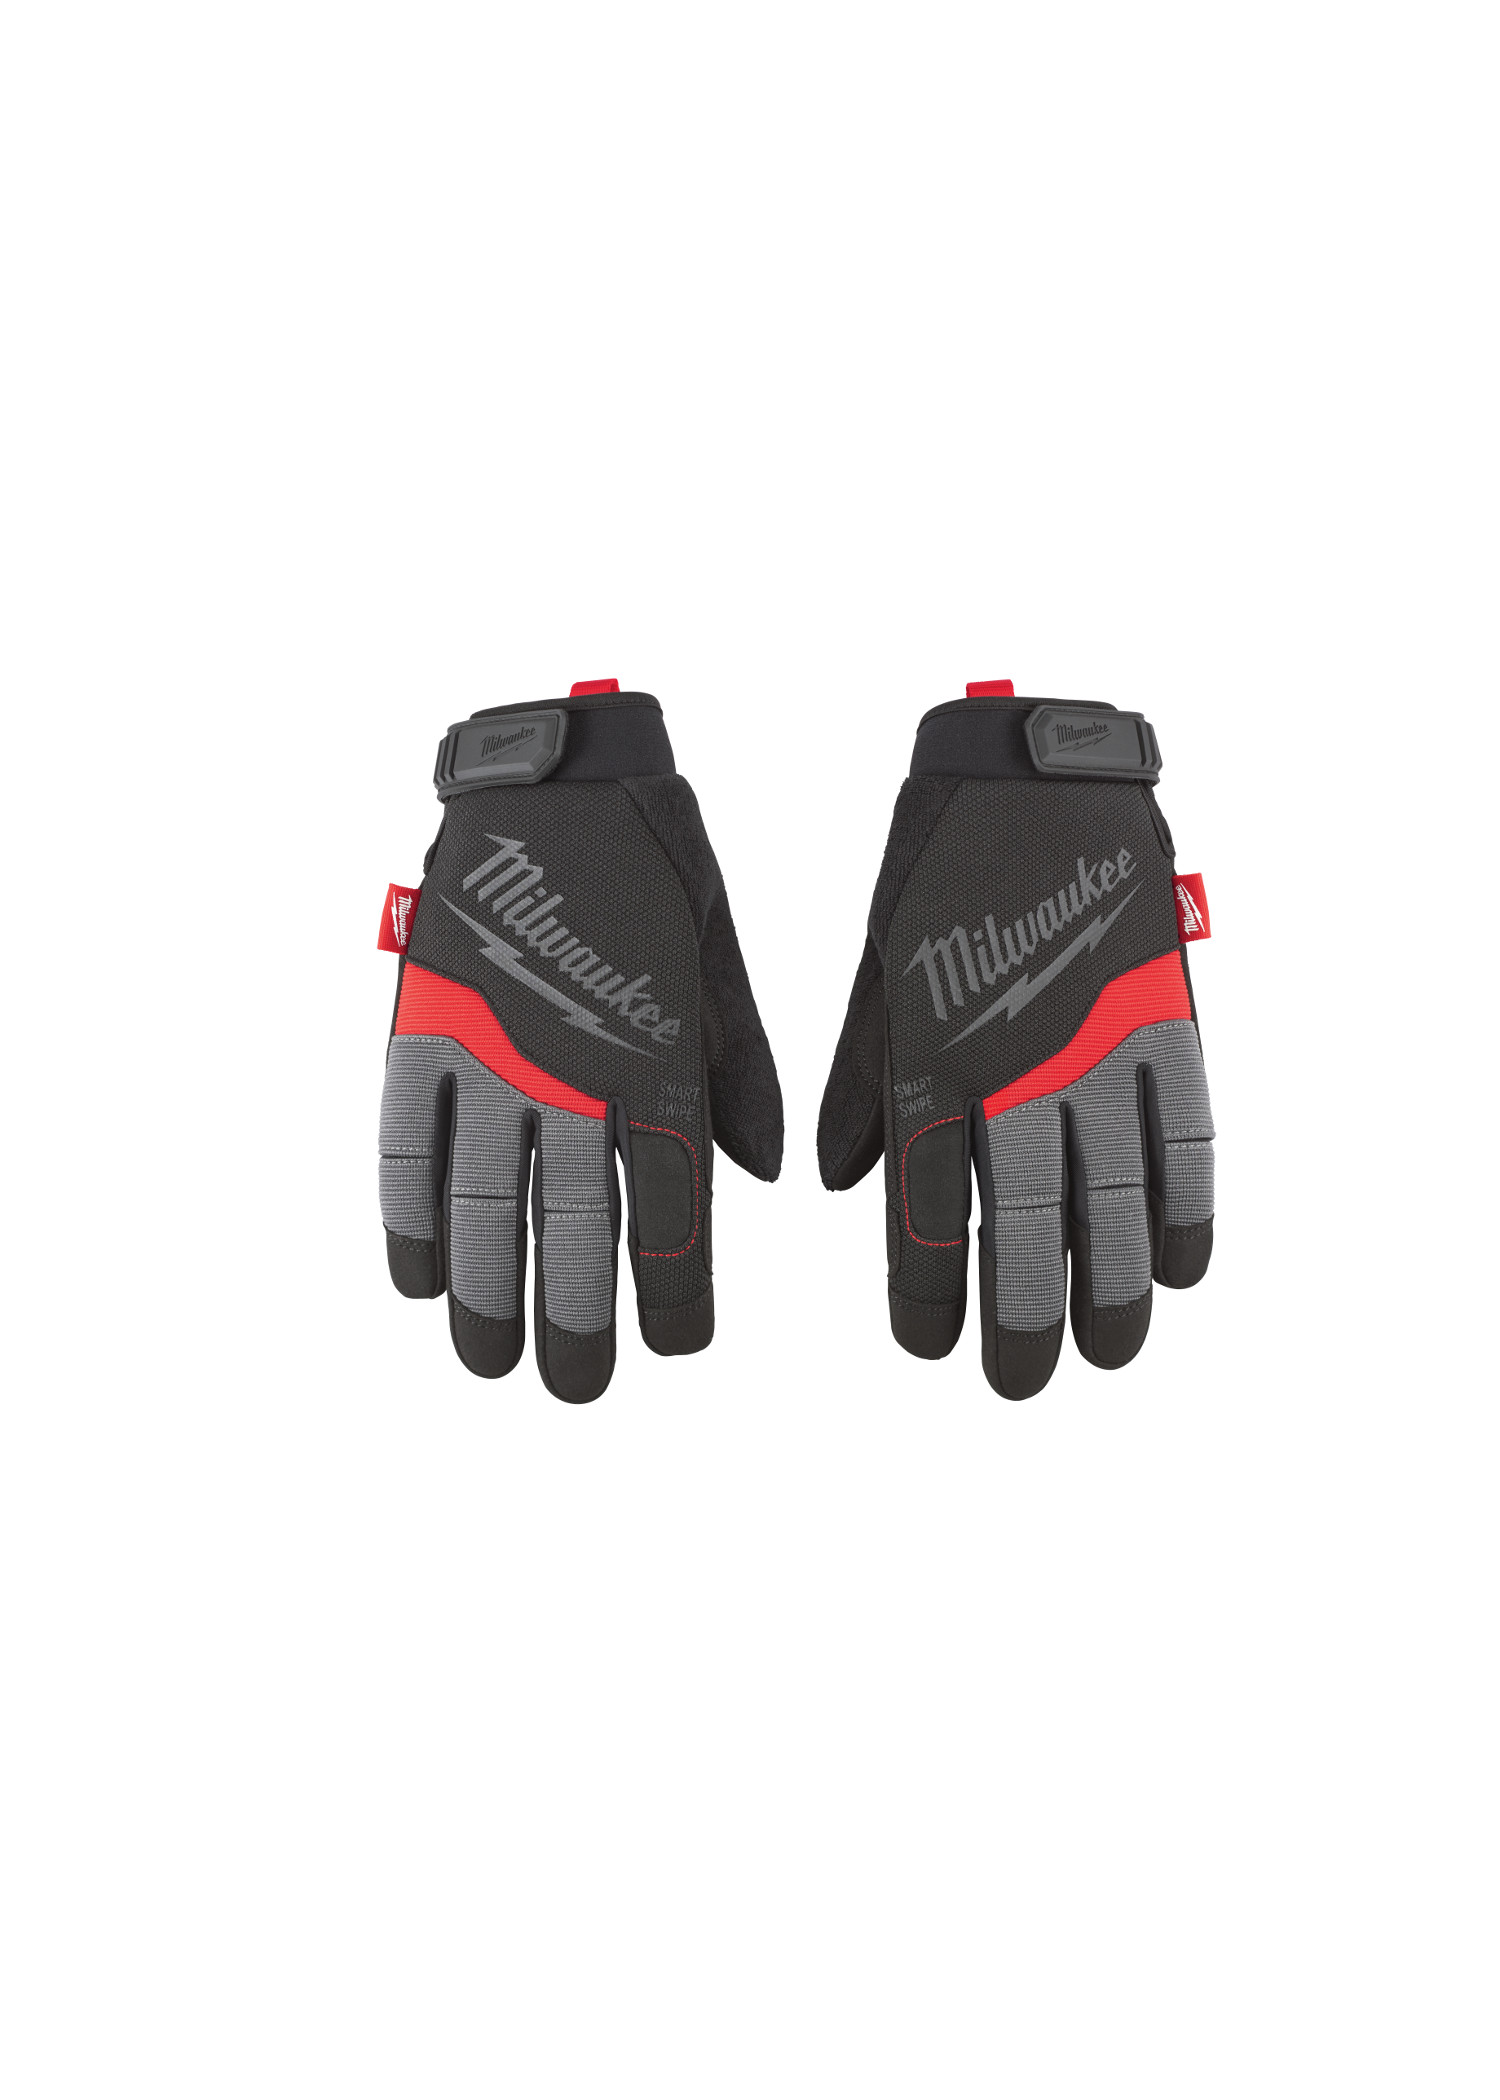 Milwaukee® 48-22-8725 General Purpose Performance Work Gloves, S, Black/Red, High Dexterity Finger Tip, Synthetic Leather